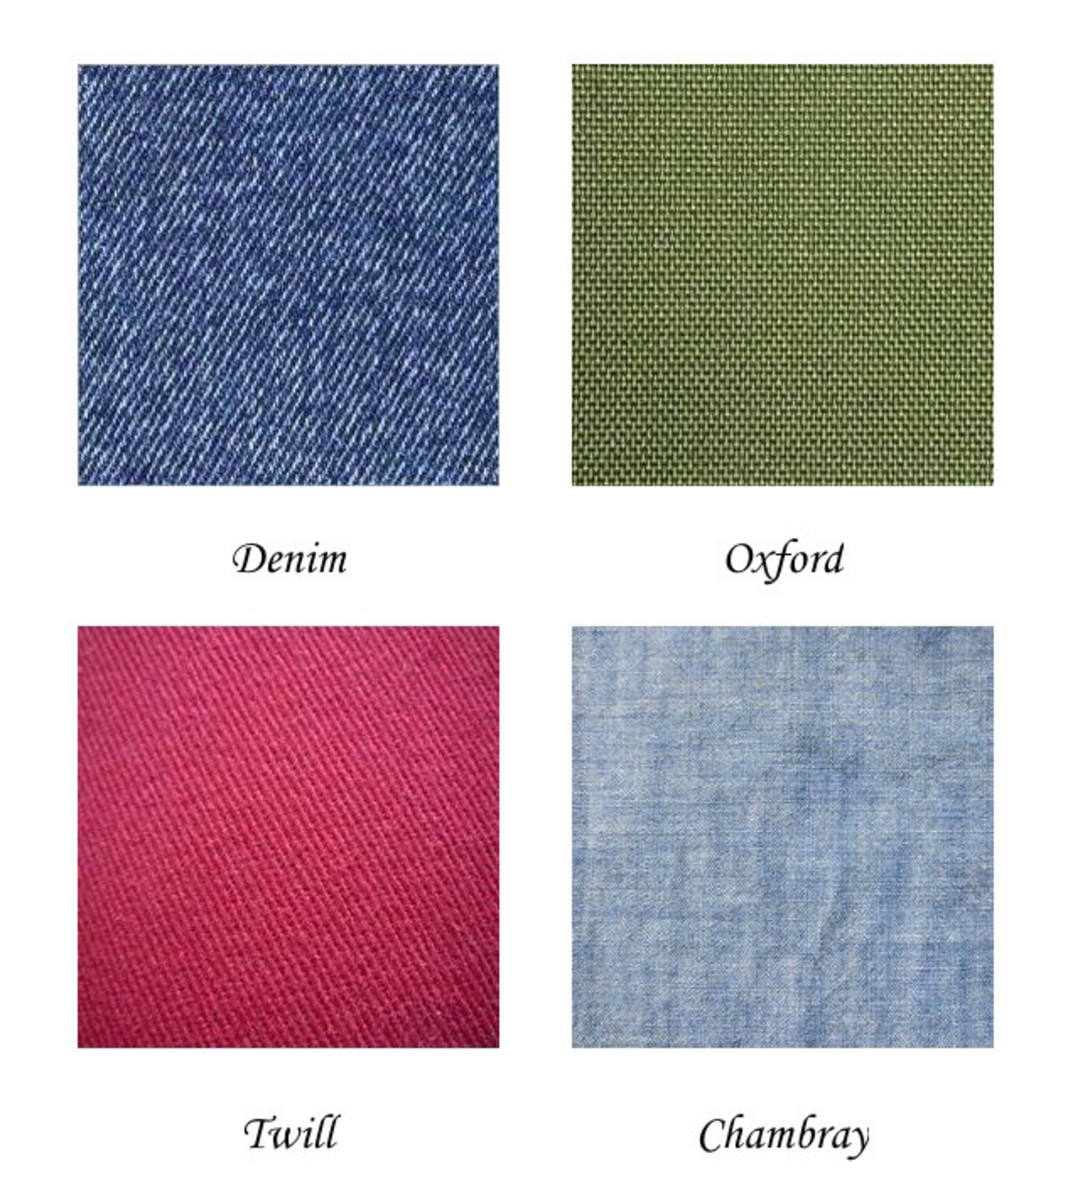 Examples of Woven Fabrics